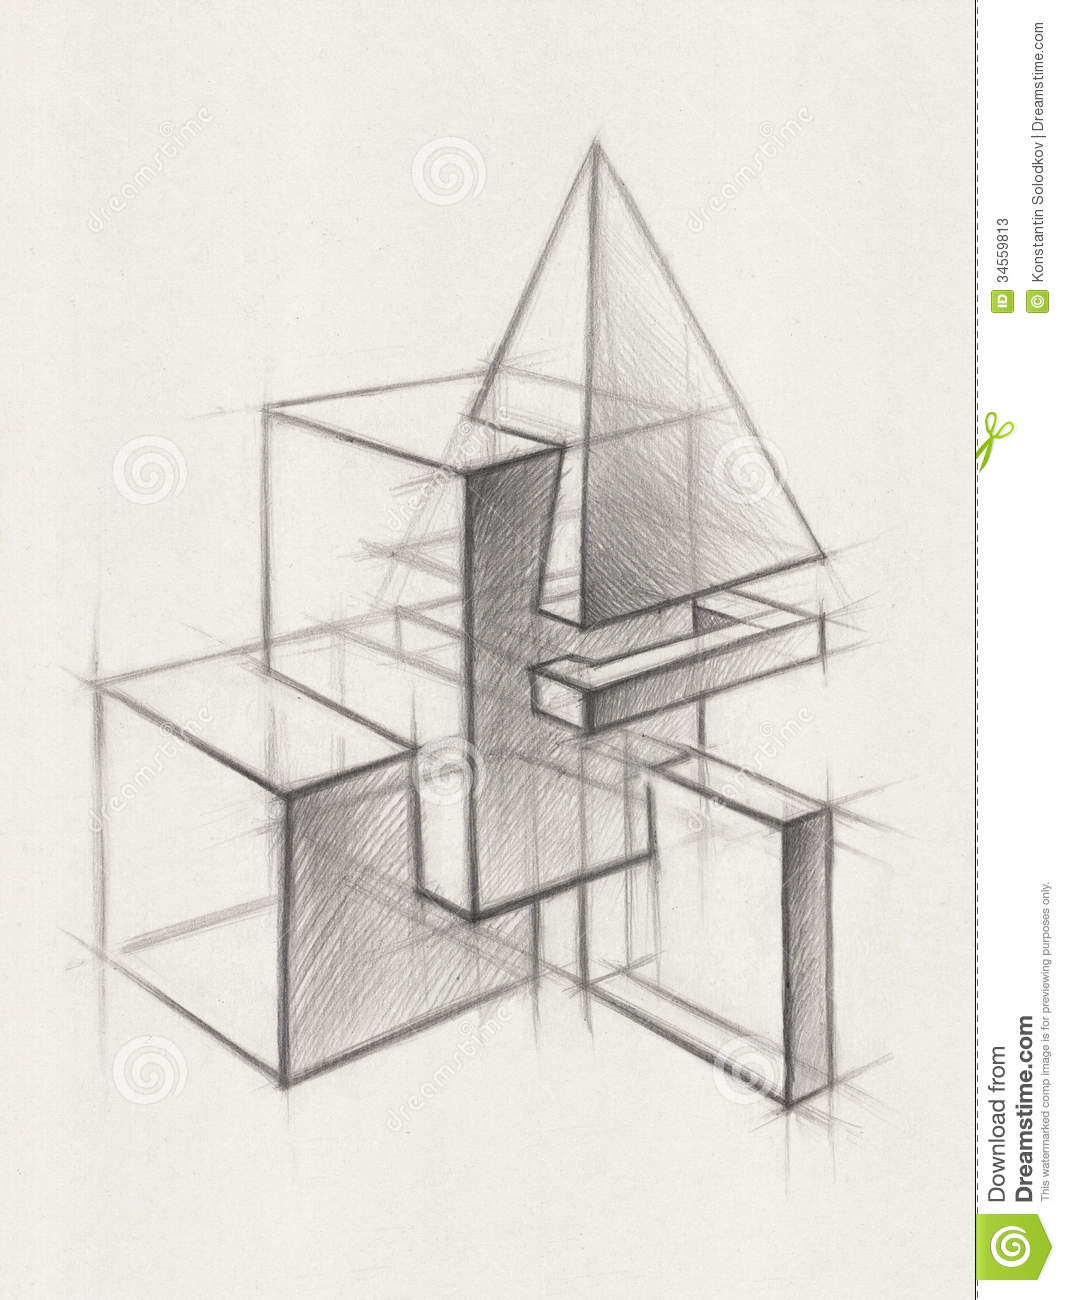 3d Shape Line Drawings : The gallery for gt geometric shapes art design